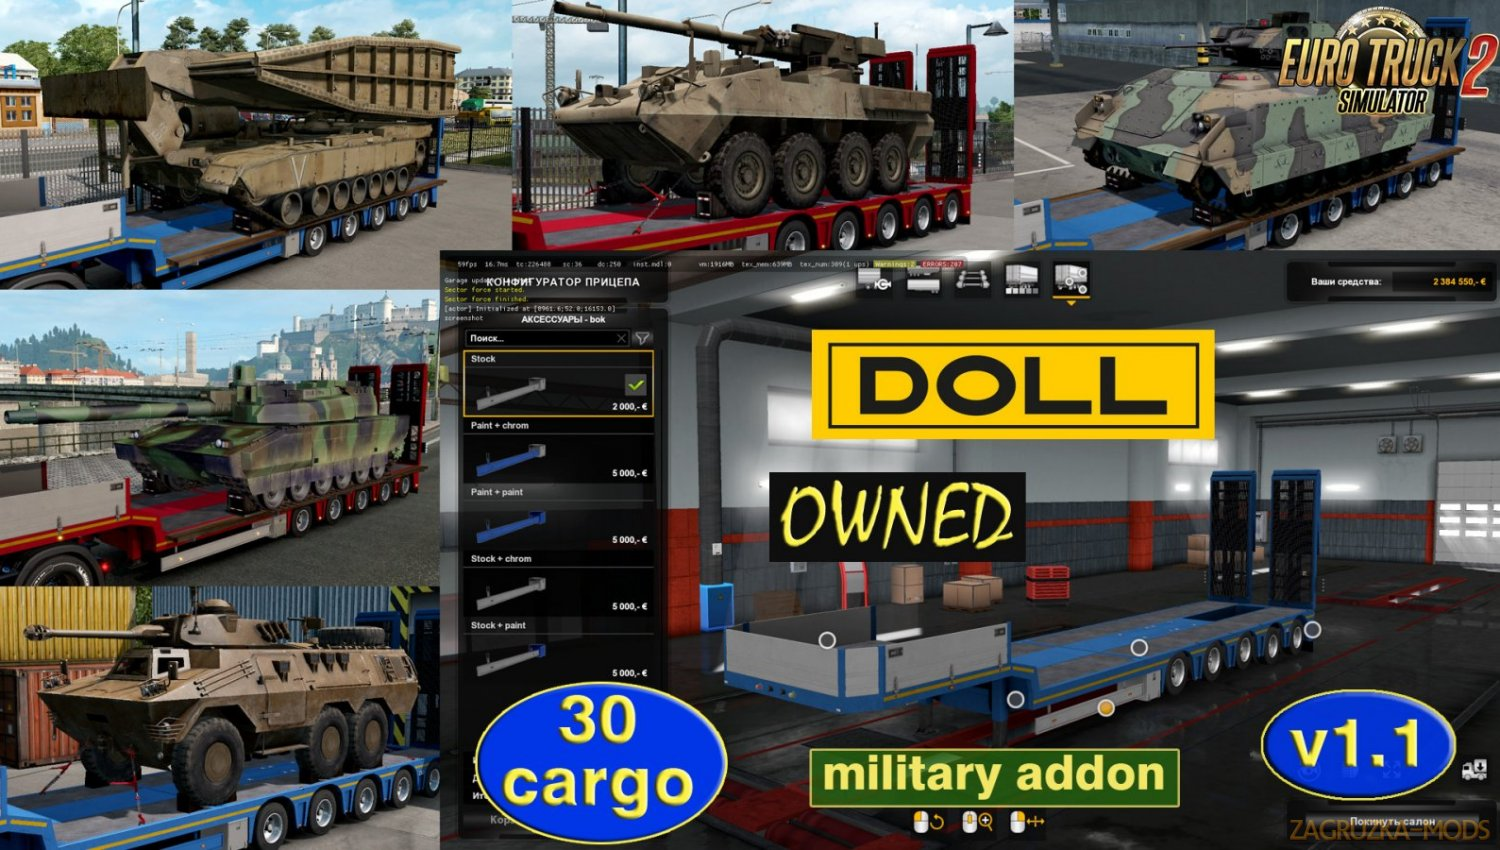 Military addon for Doll Panther v1.1 by Jazzycat